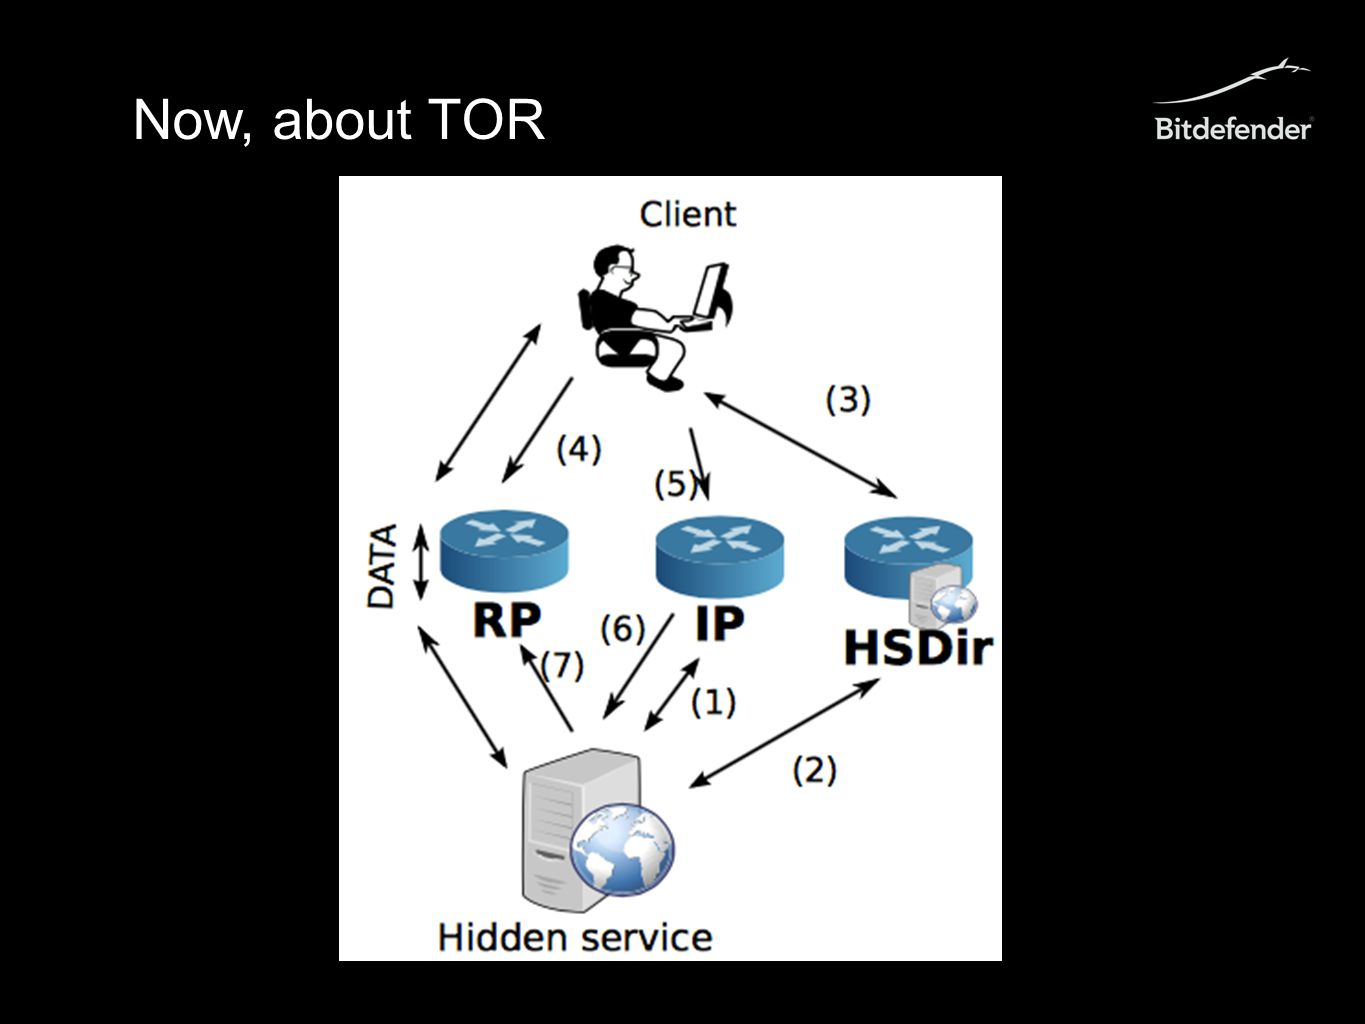 Now, about TOR